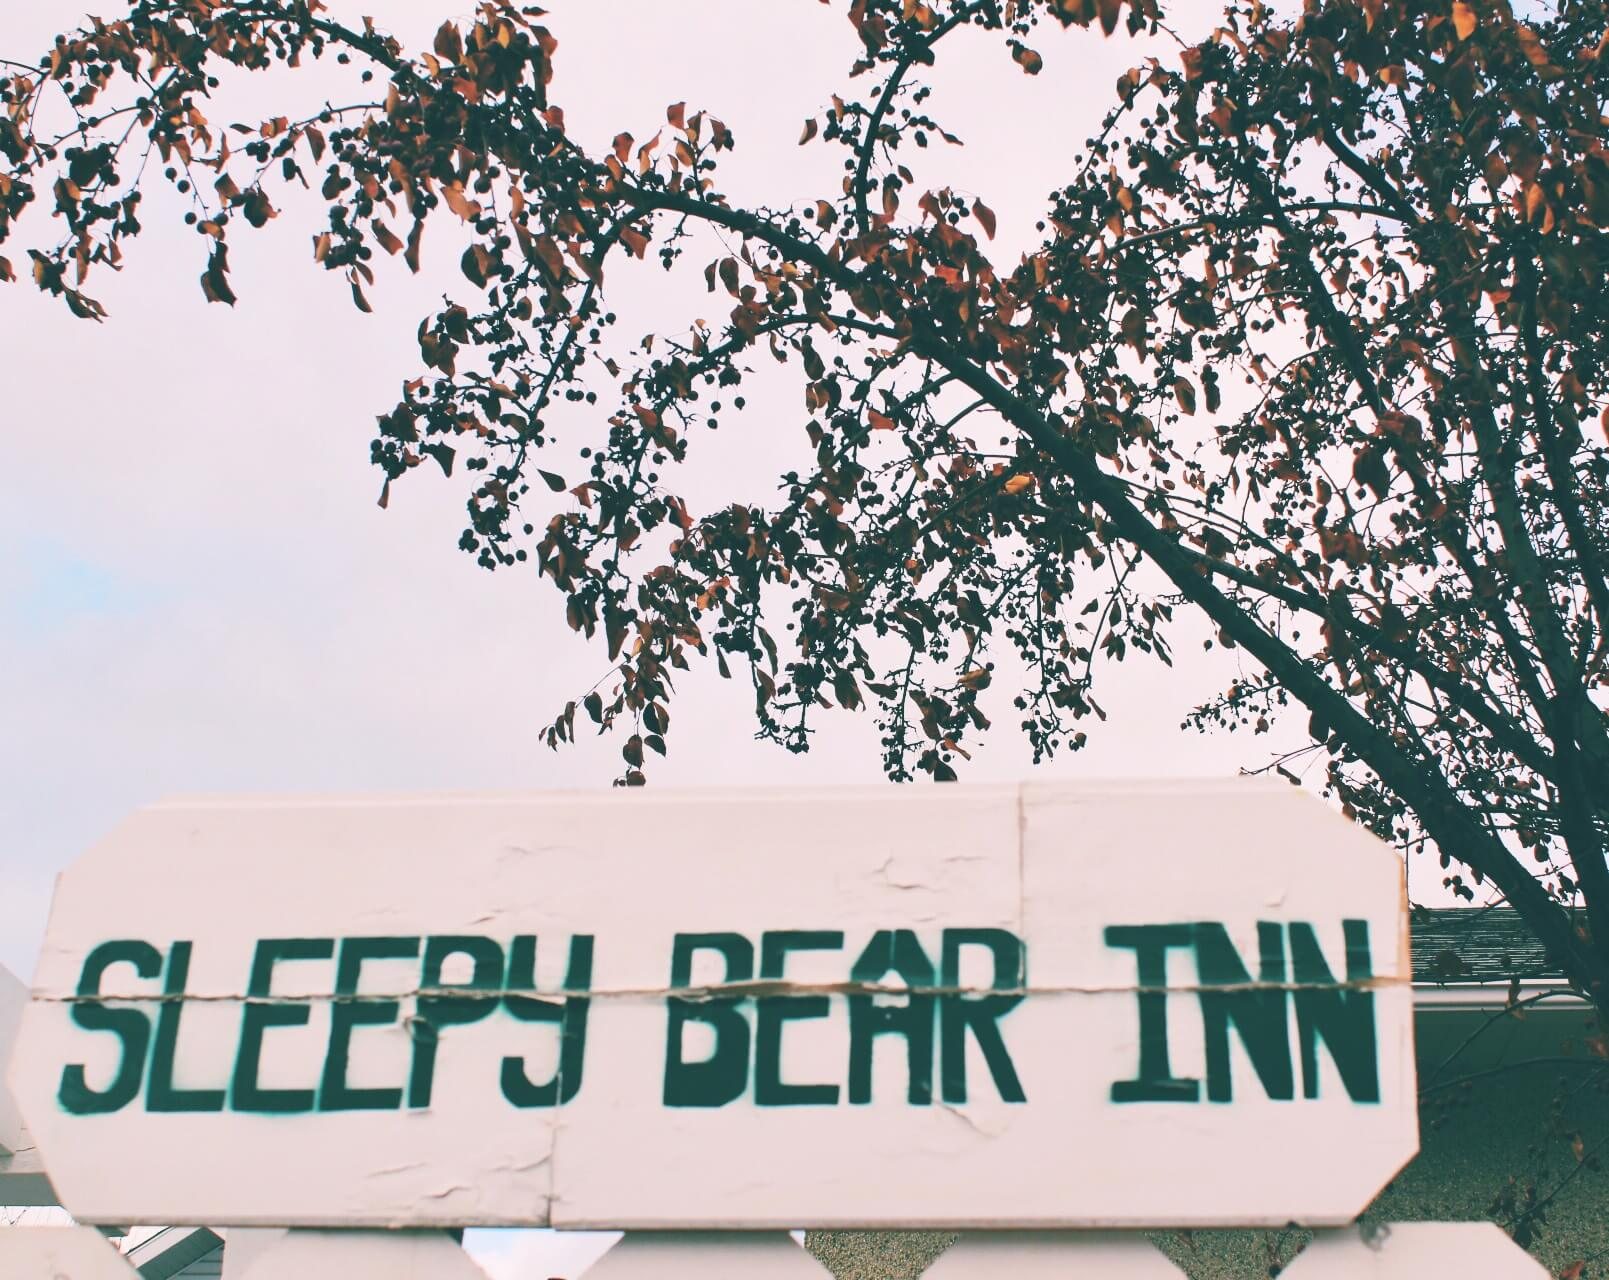 Where to Stay in Jasper, Alberta: The Sleepy Bear Inn